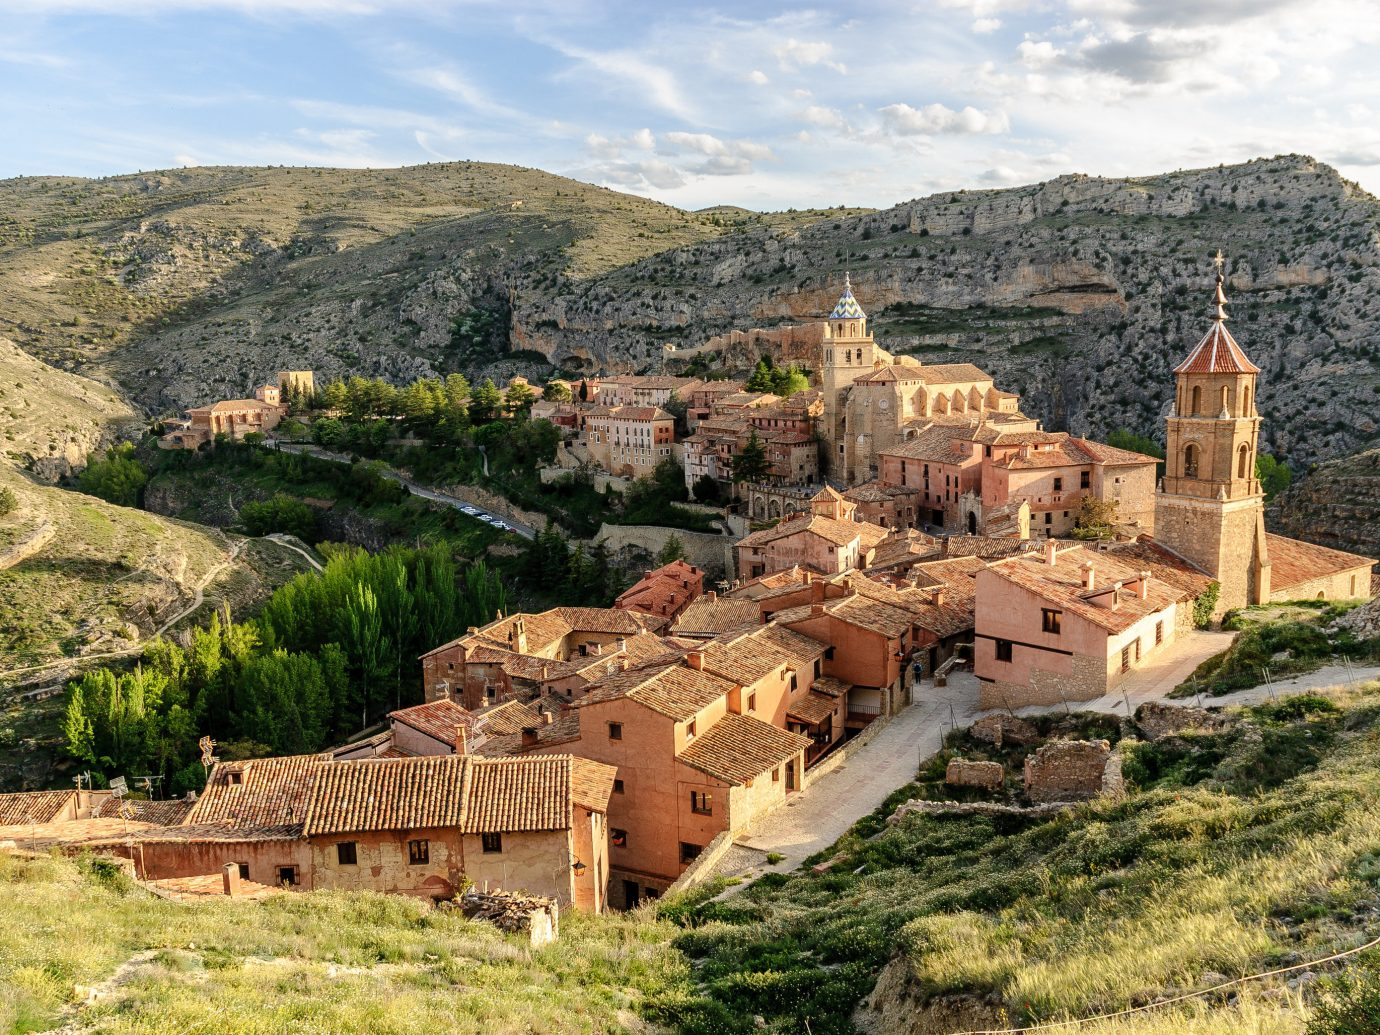 europe Spain Trip Ideas mountain grass outdoor sky mountain village valley Village canyon Nature rock rural area historic site ancient history tourism hill middle ages tree landscape escarpment medieval architecture monastery estate archaeological site hillside